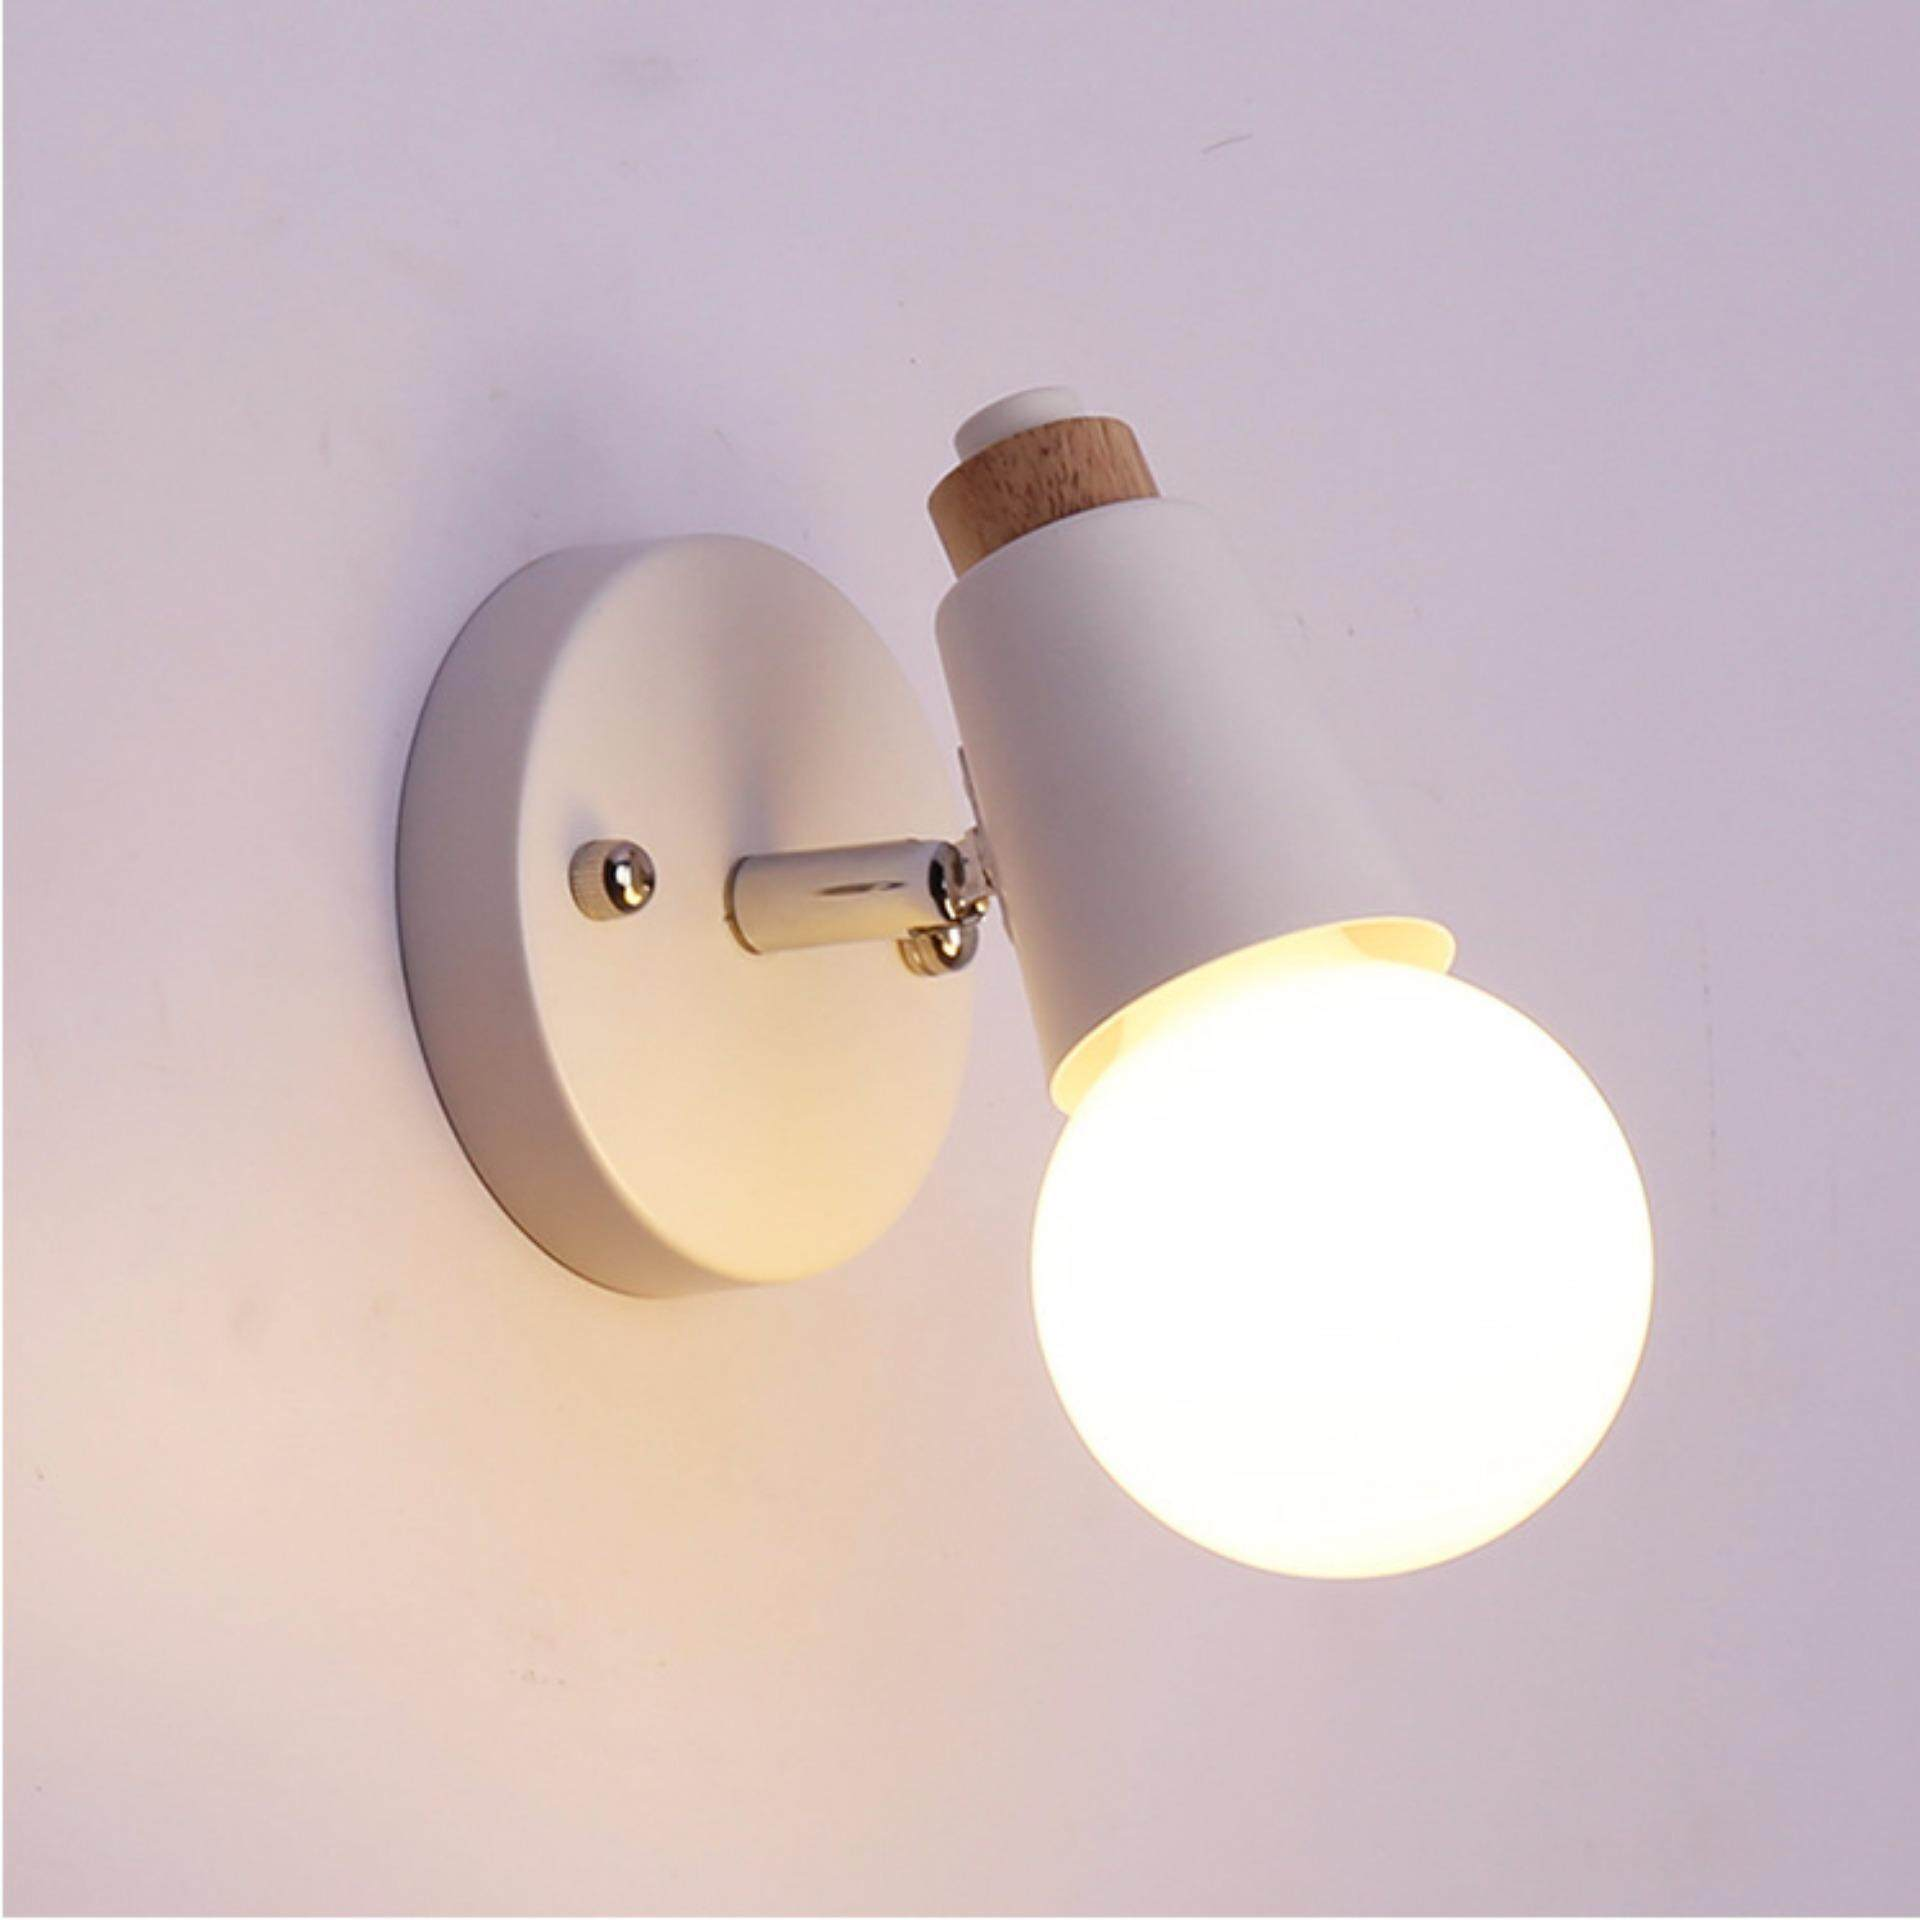 Catwalk Indoor Wall Light LED Modern Metal E27 Perfect Wall Lamp Decorative For Bedroom - intl